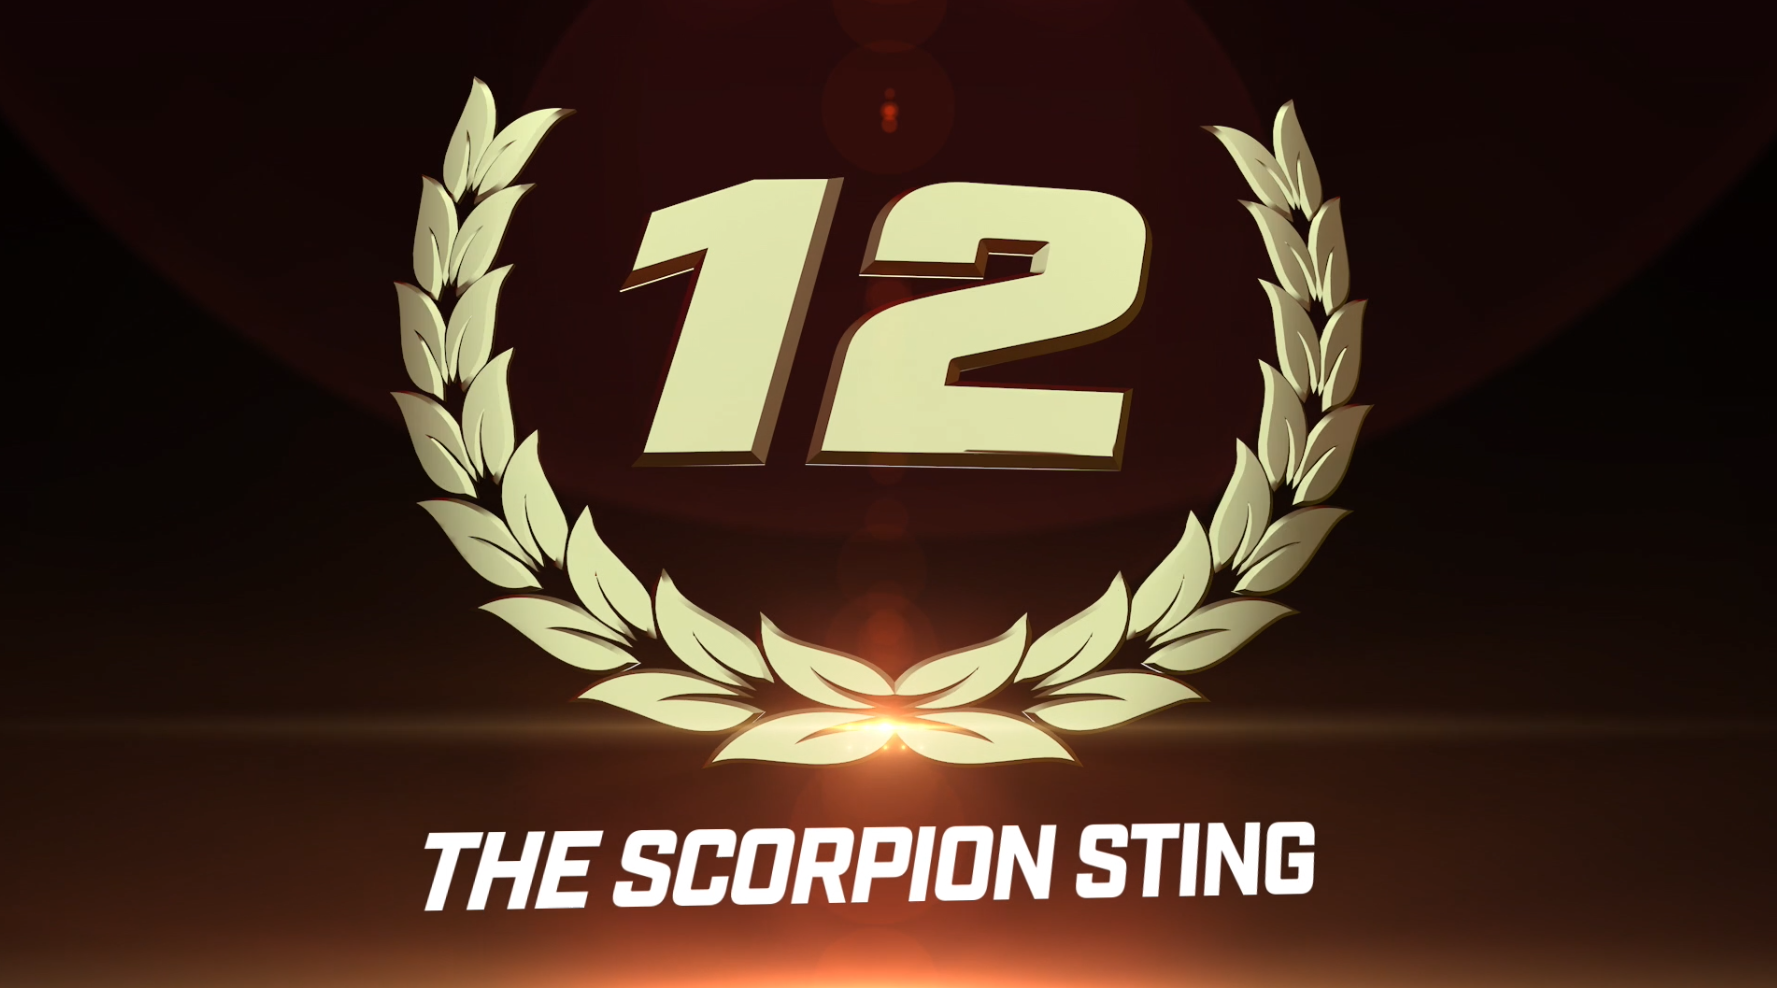 Top 50 GLORY Moments: #12 The Scorpion Sting